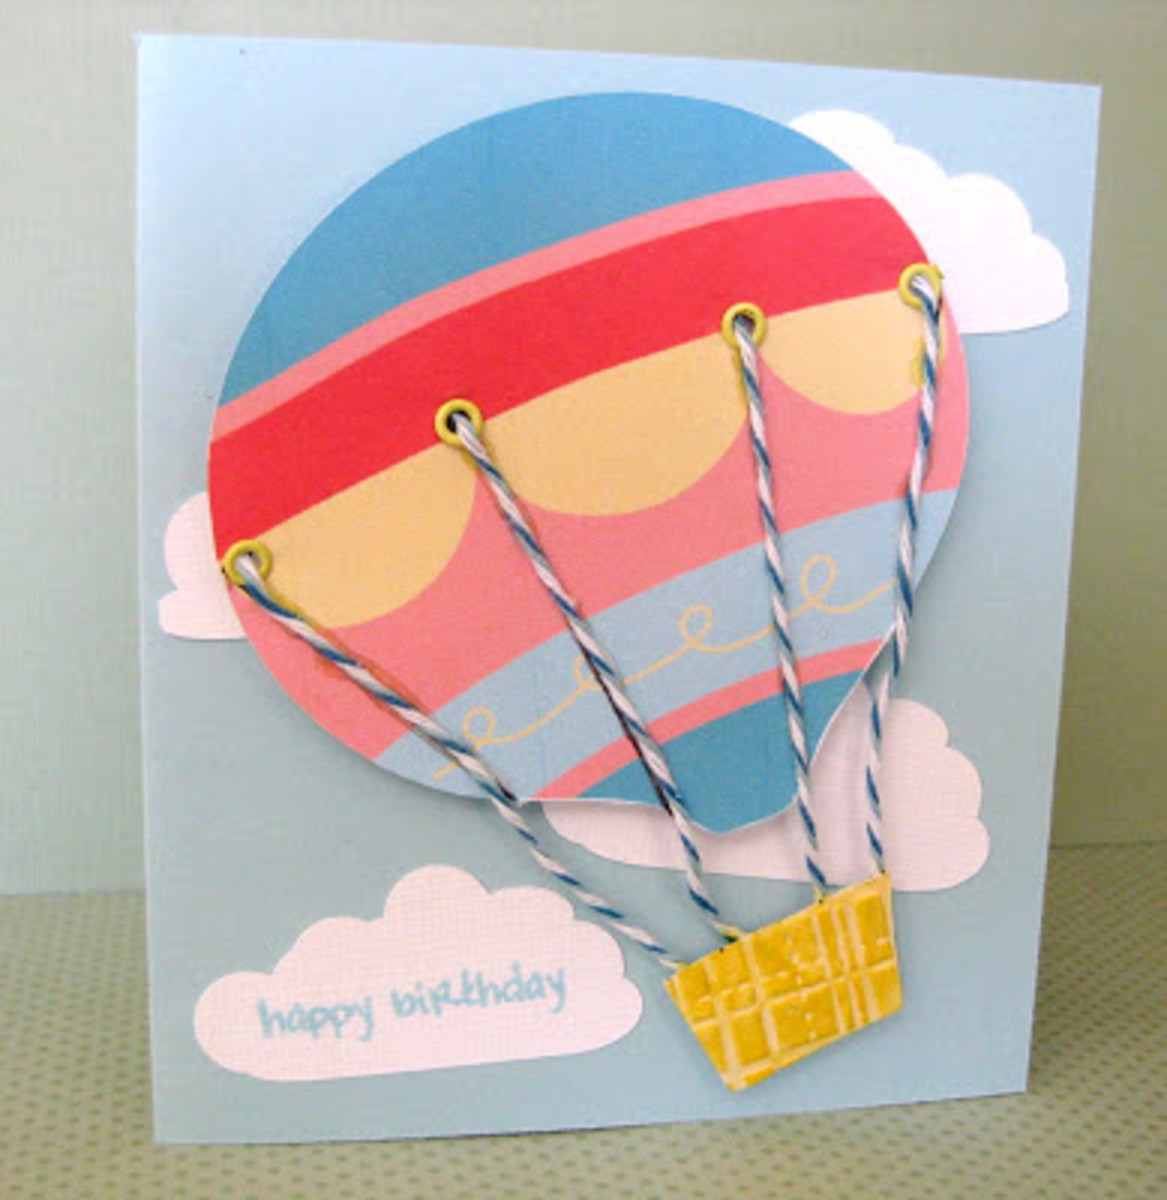 Homemade hot air balloon greeting cards ideas birthday pop up and it m4hsunfo